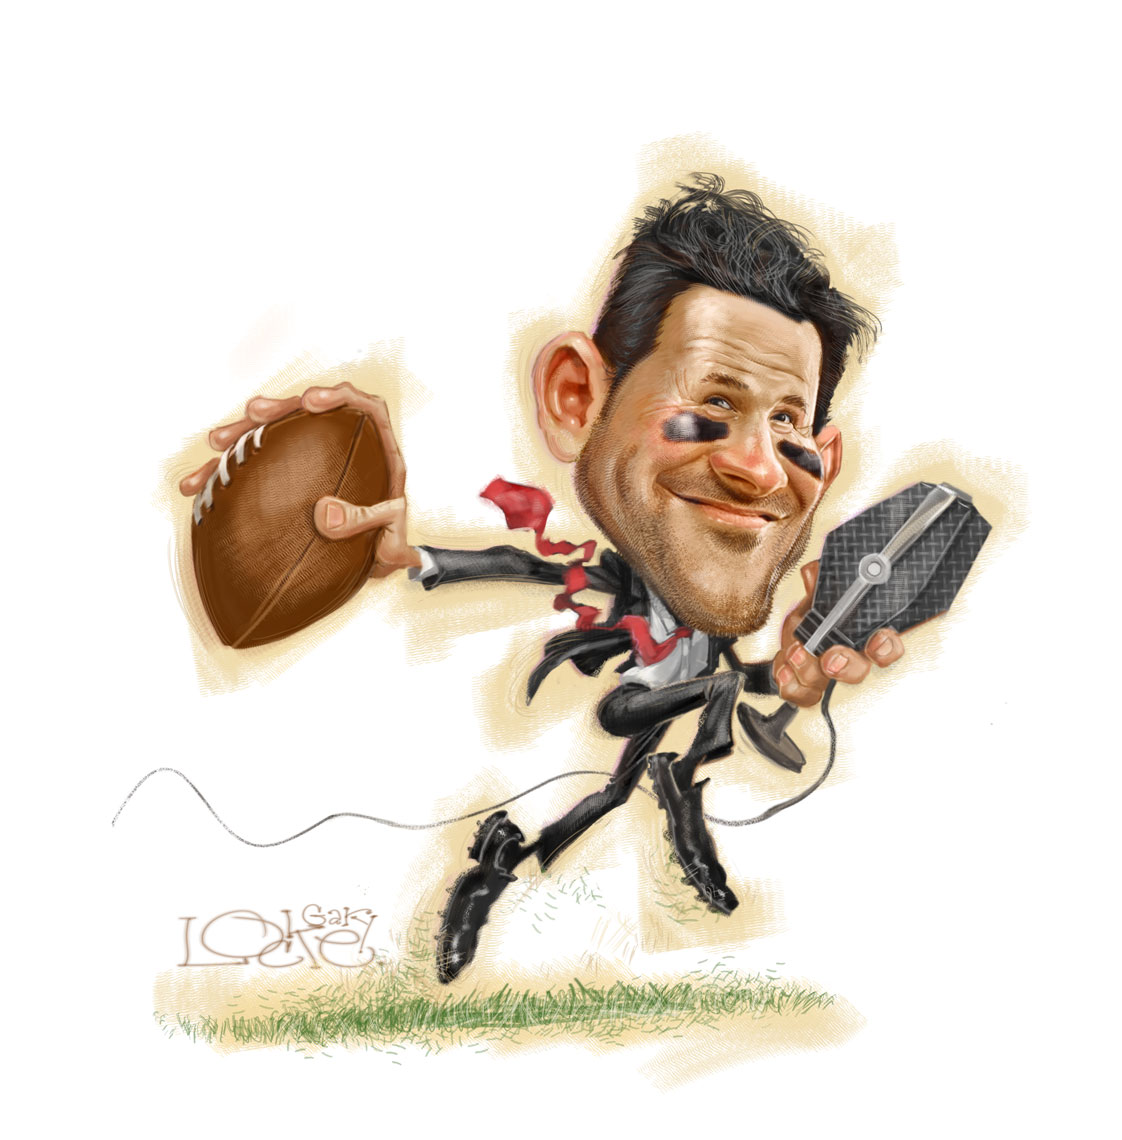 Gary-Locke-Illustration-of-CBS-Broadcaster-Tony-Romo